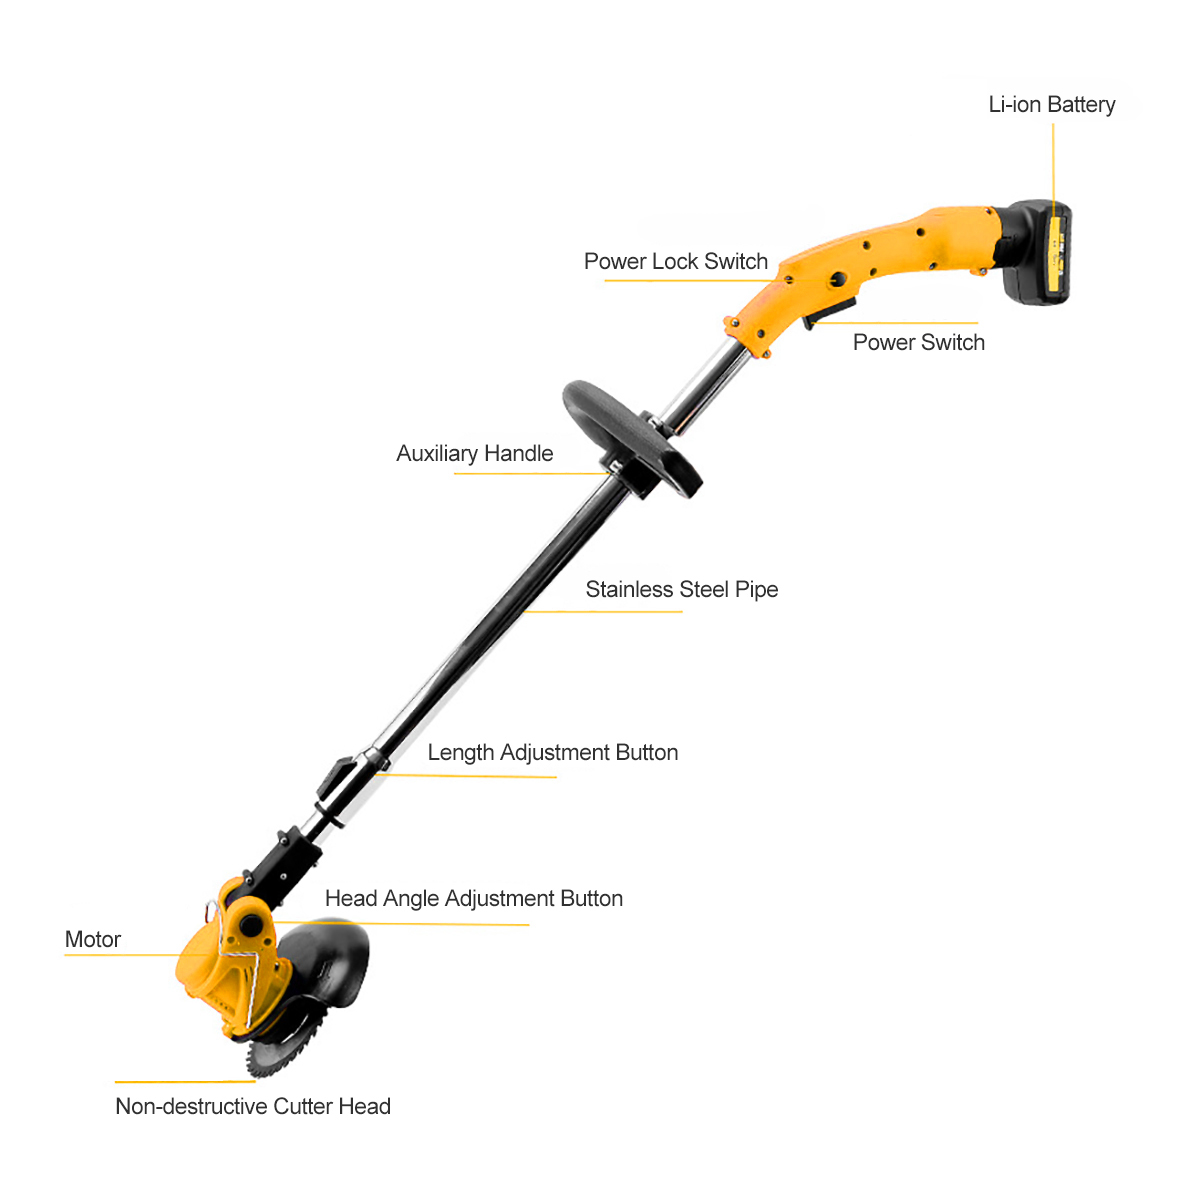 Tools : 450W Garden Tools Brush Cutter Cordless String Lawn Electric Grass Trimmer Lawn Mower 26V With 2000mAh Lithium-ion Battery